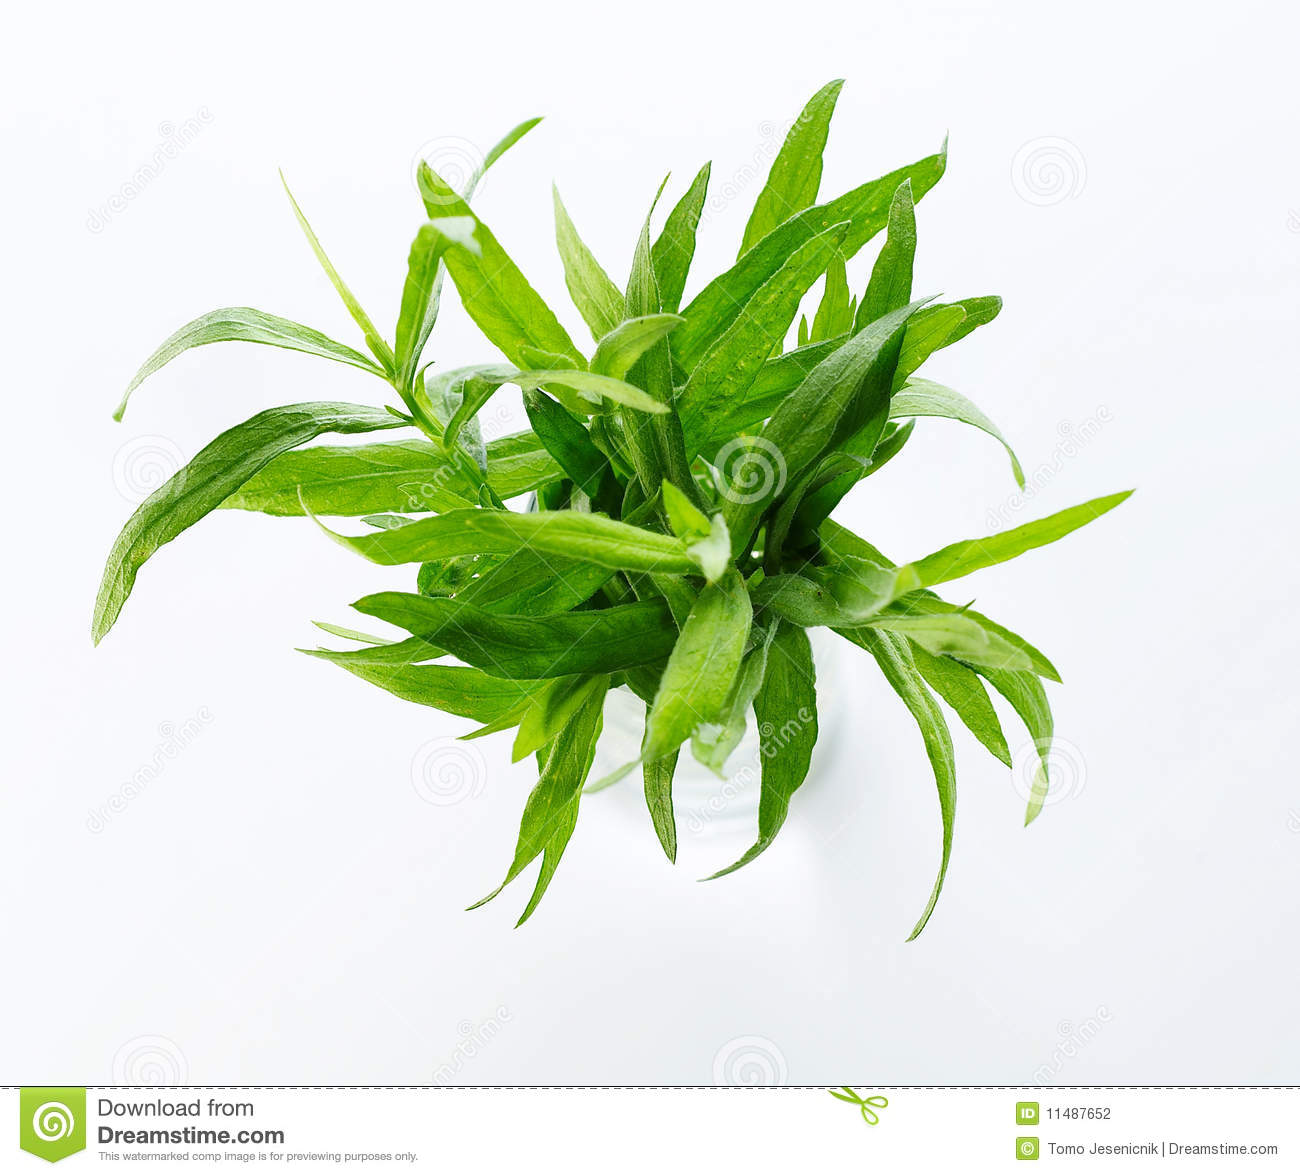 Different herbs royalty free stock image image 16265346 - Different Herbs Royalty Free Stock Image Image 16265346 Tarragon Herb Stock Photography Tarragon Herb Fresh Download